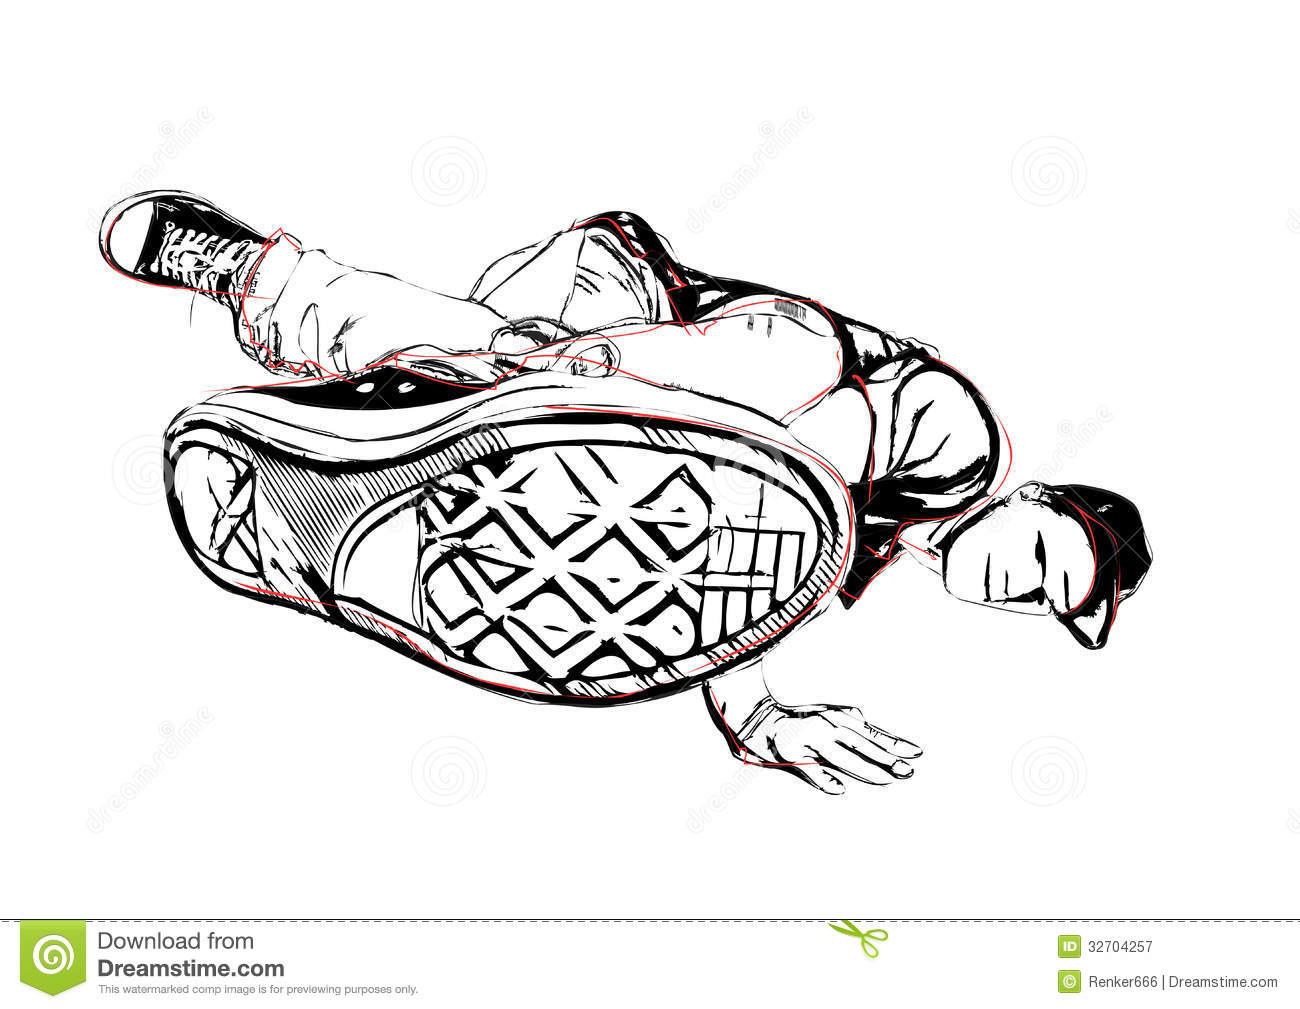 Breakdancer Illustration Royalty Free Stock Photography